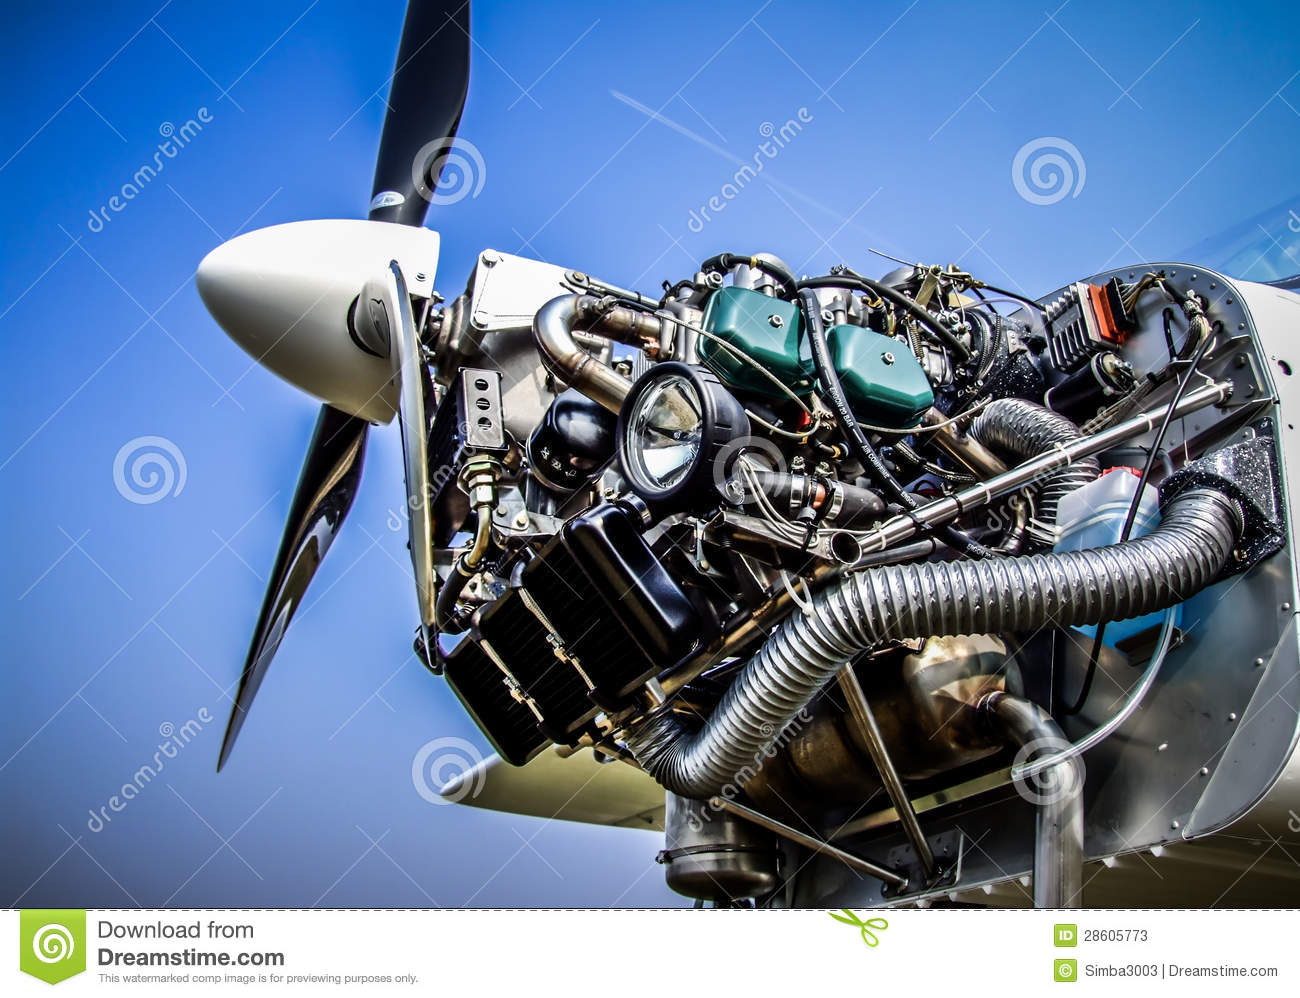 6 7 Diesel Fuel Filters Airplane Engine Stock Image Image Of Technology